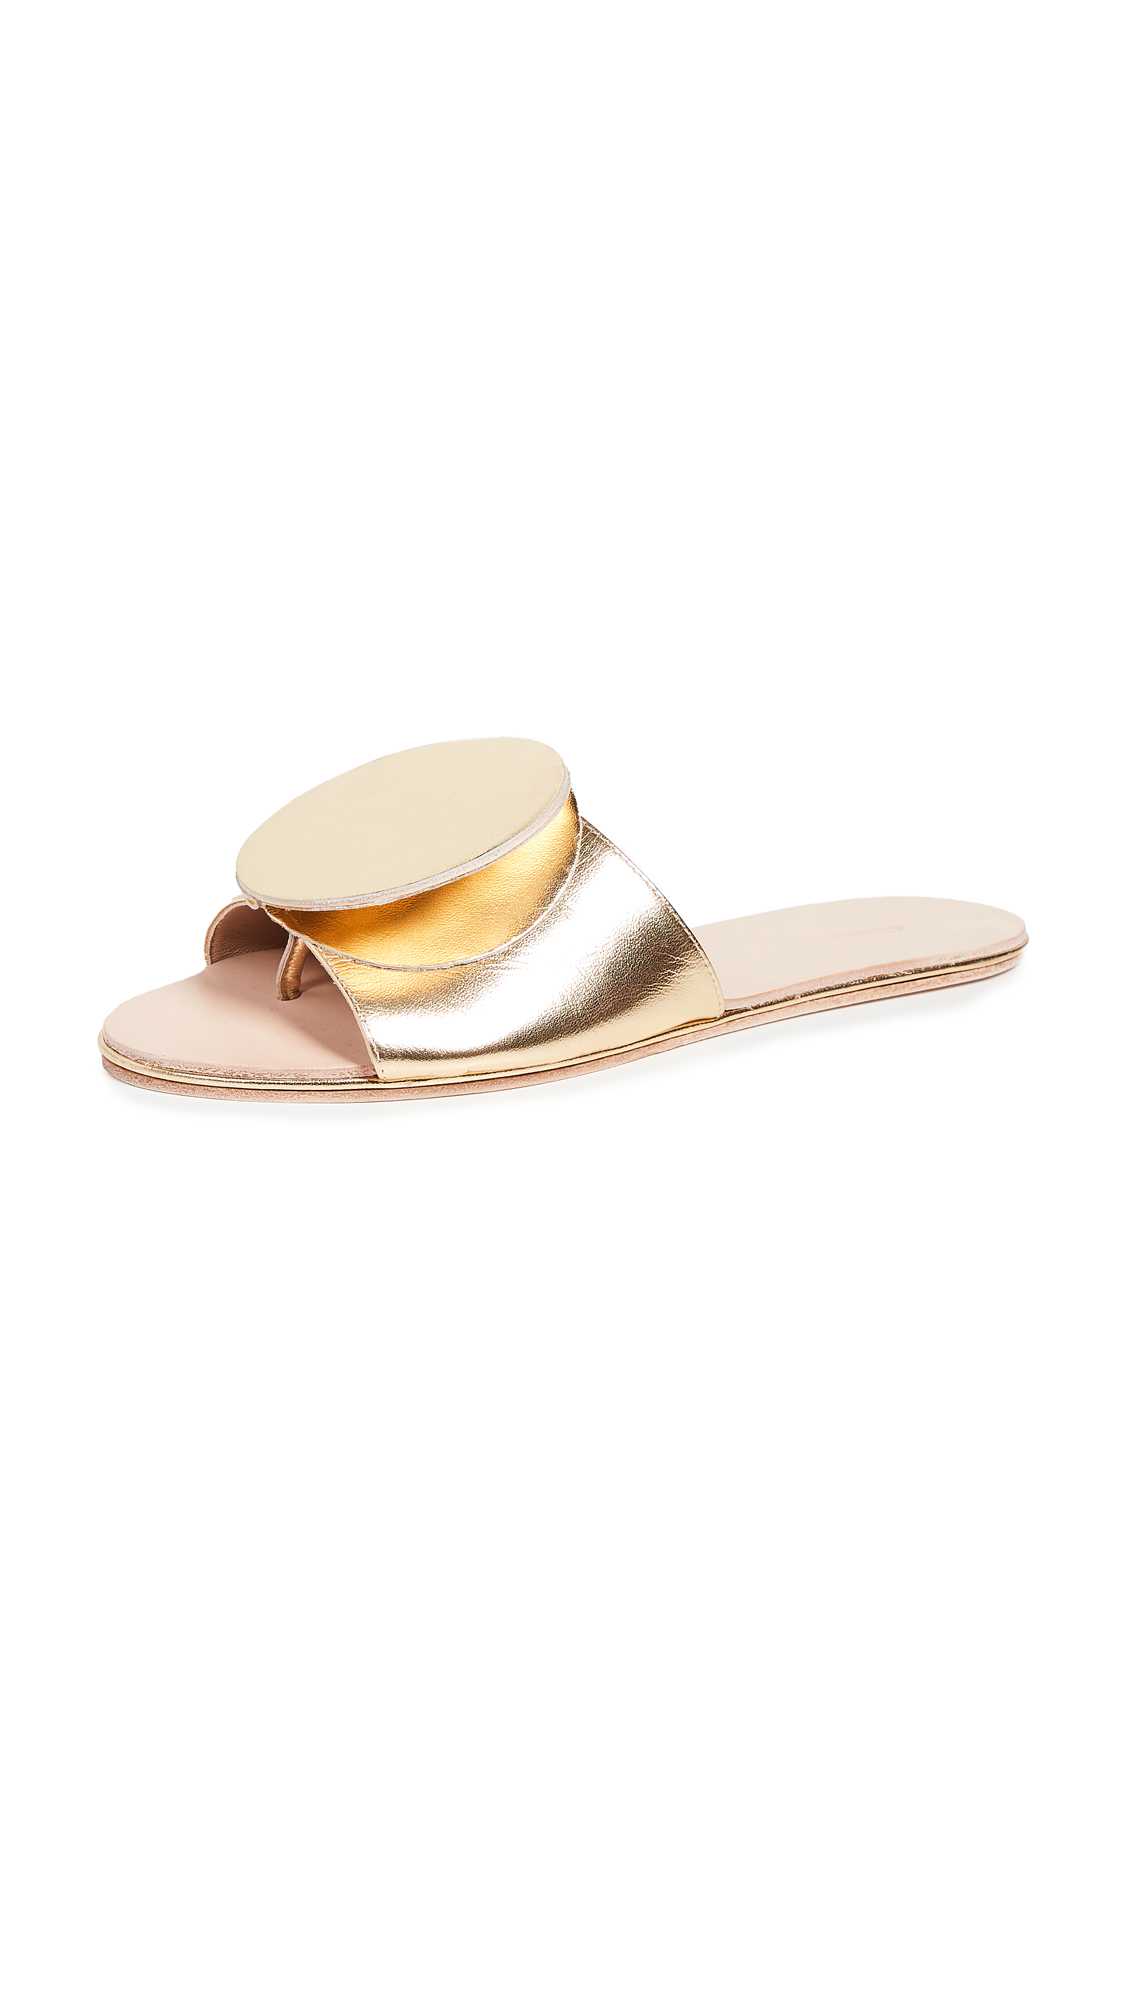 THE PALATINES Caeleste Origami Slides in Gold